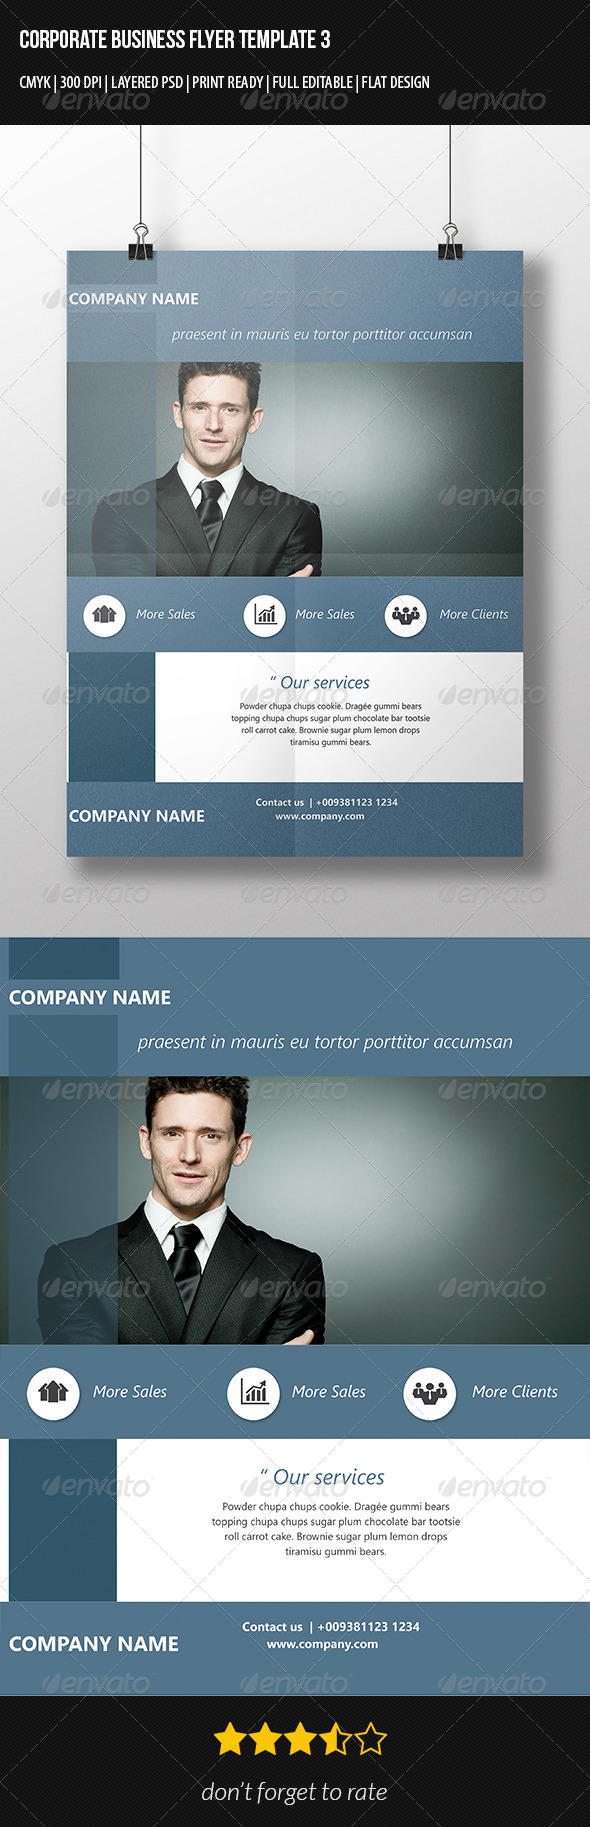 GraphicRiver Corporate Flyer Business Template 2 7301955